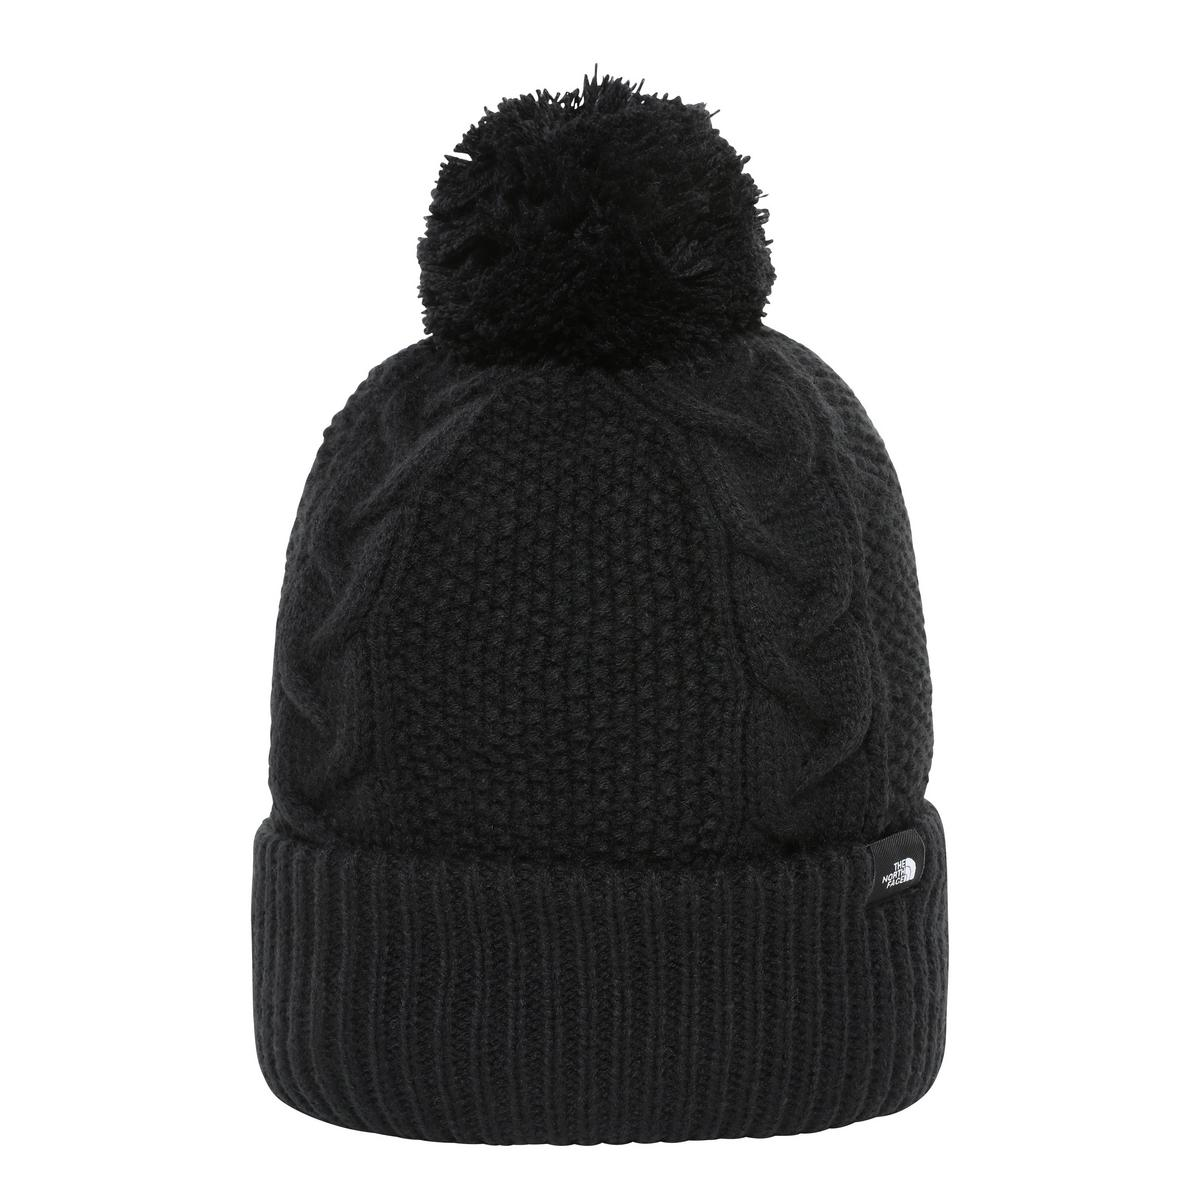 The North Face Women's Cable Minna Beanie - Black